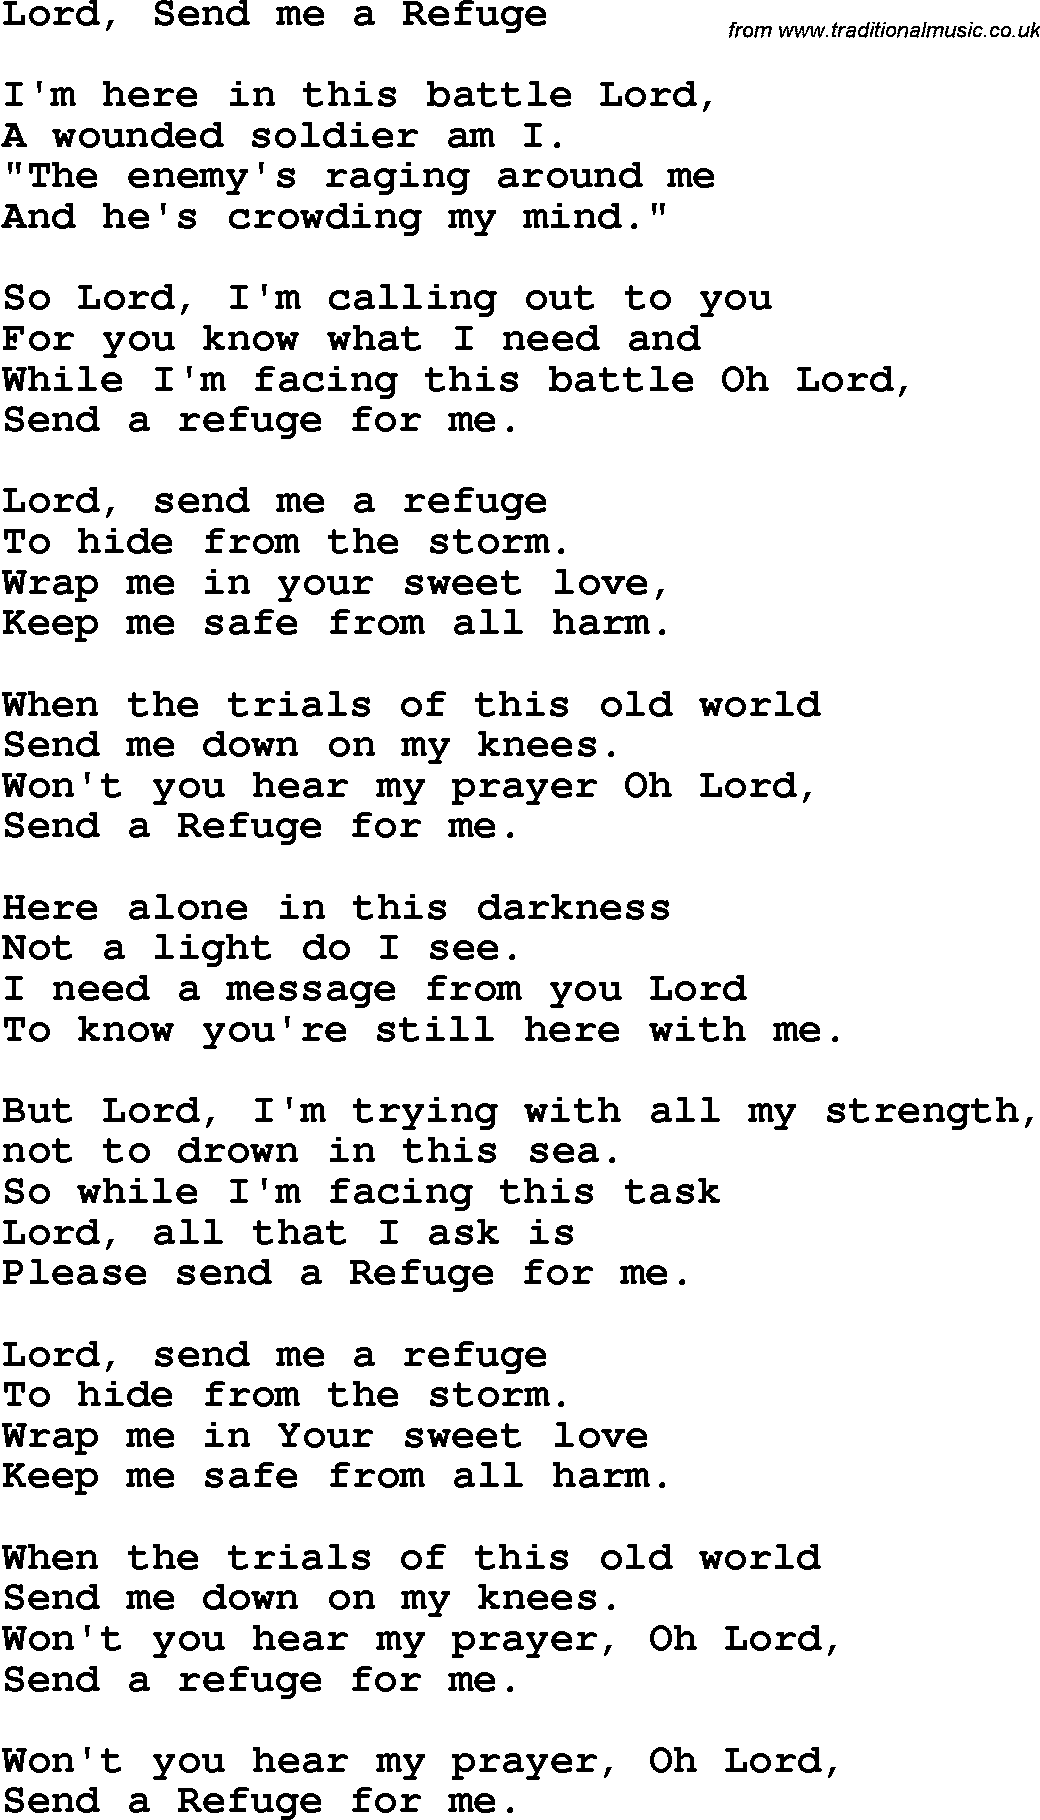 Lord move or me lyrics